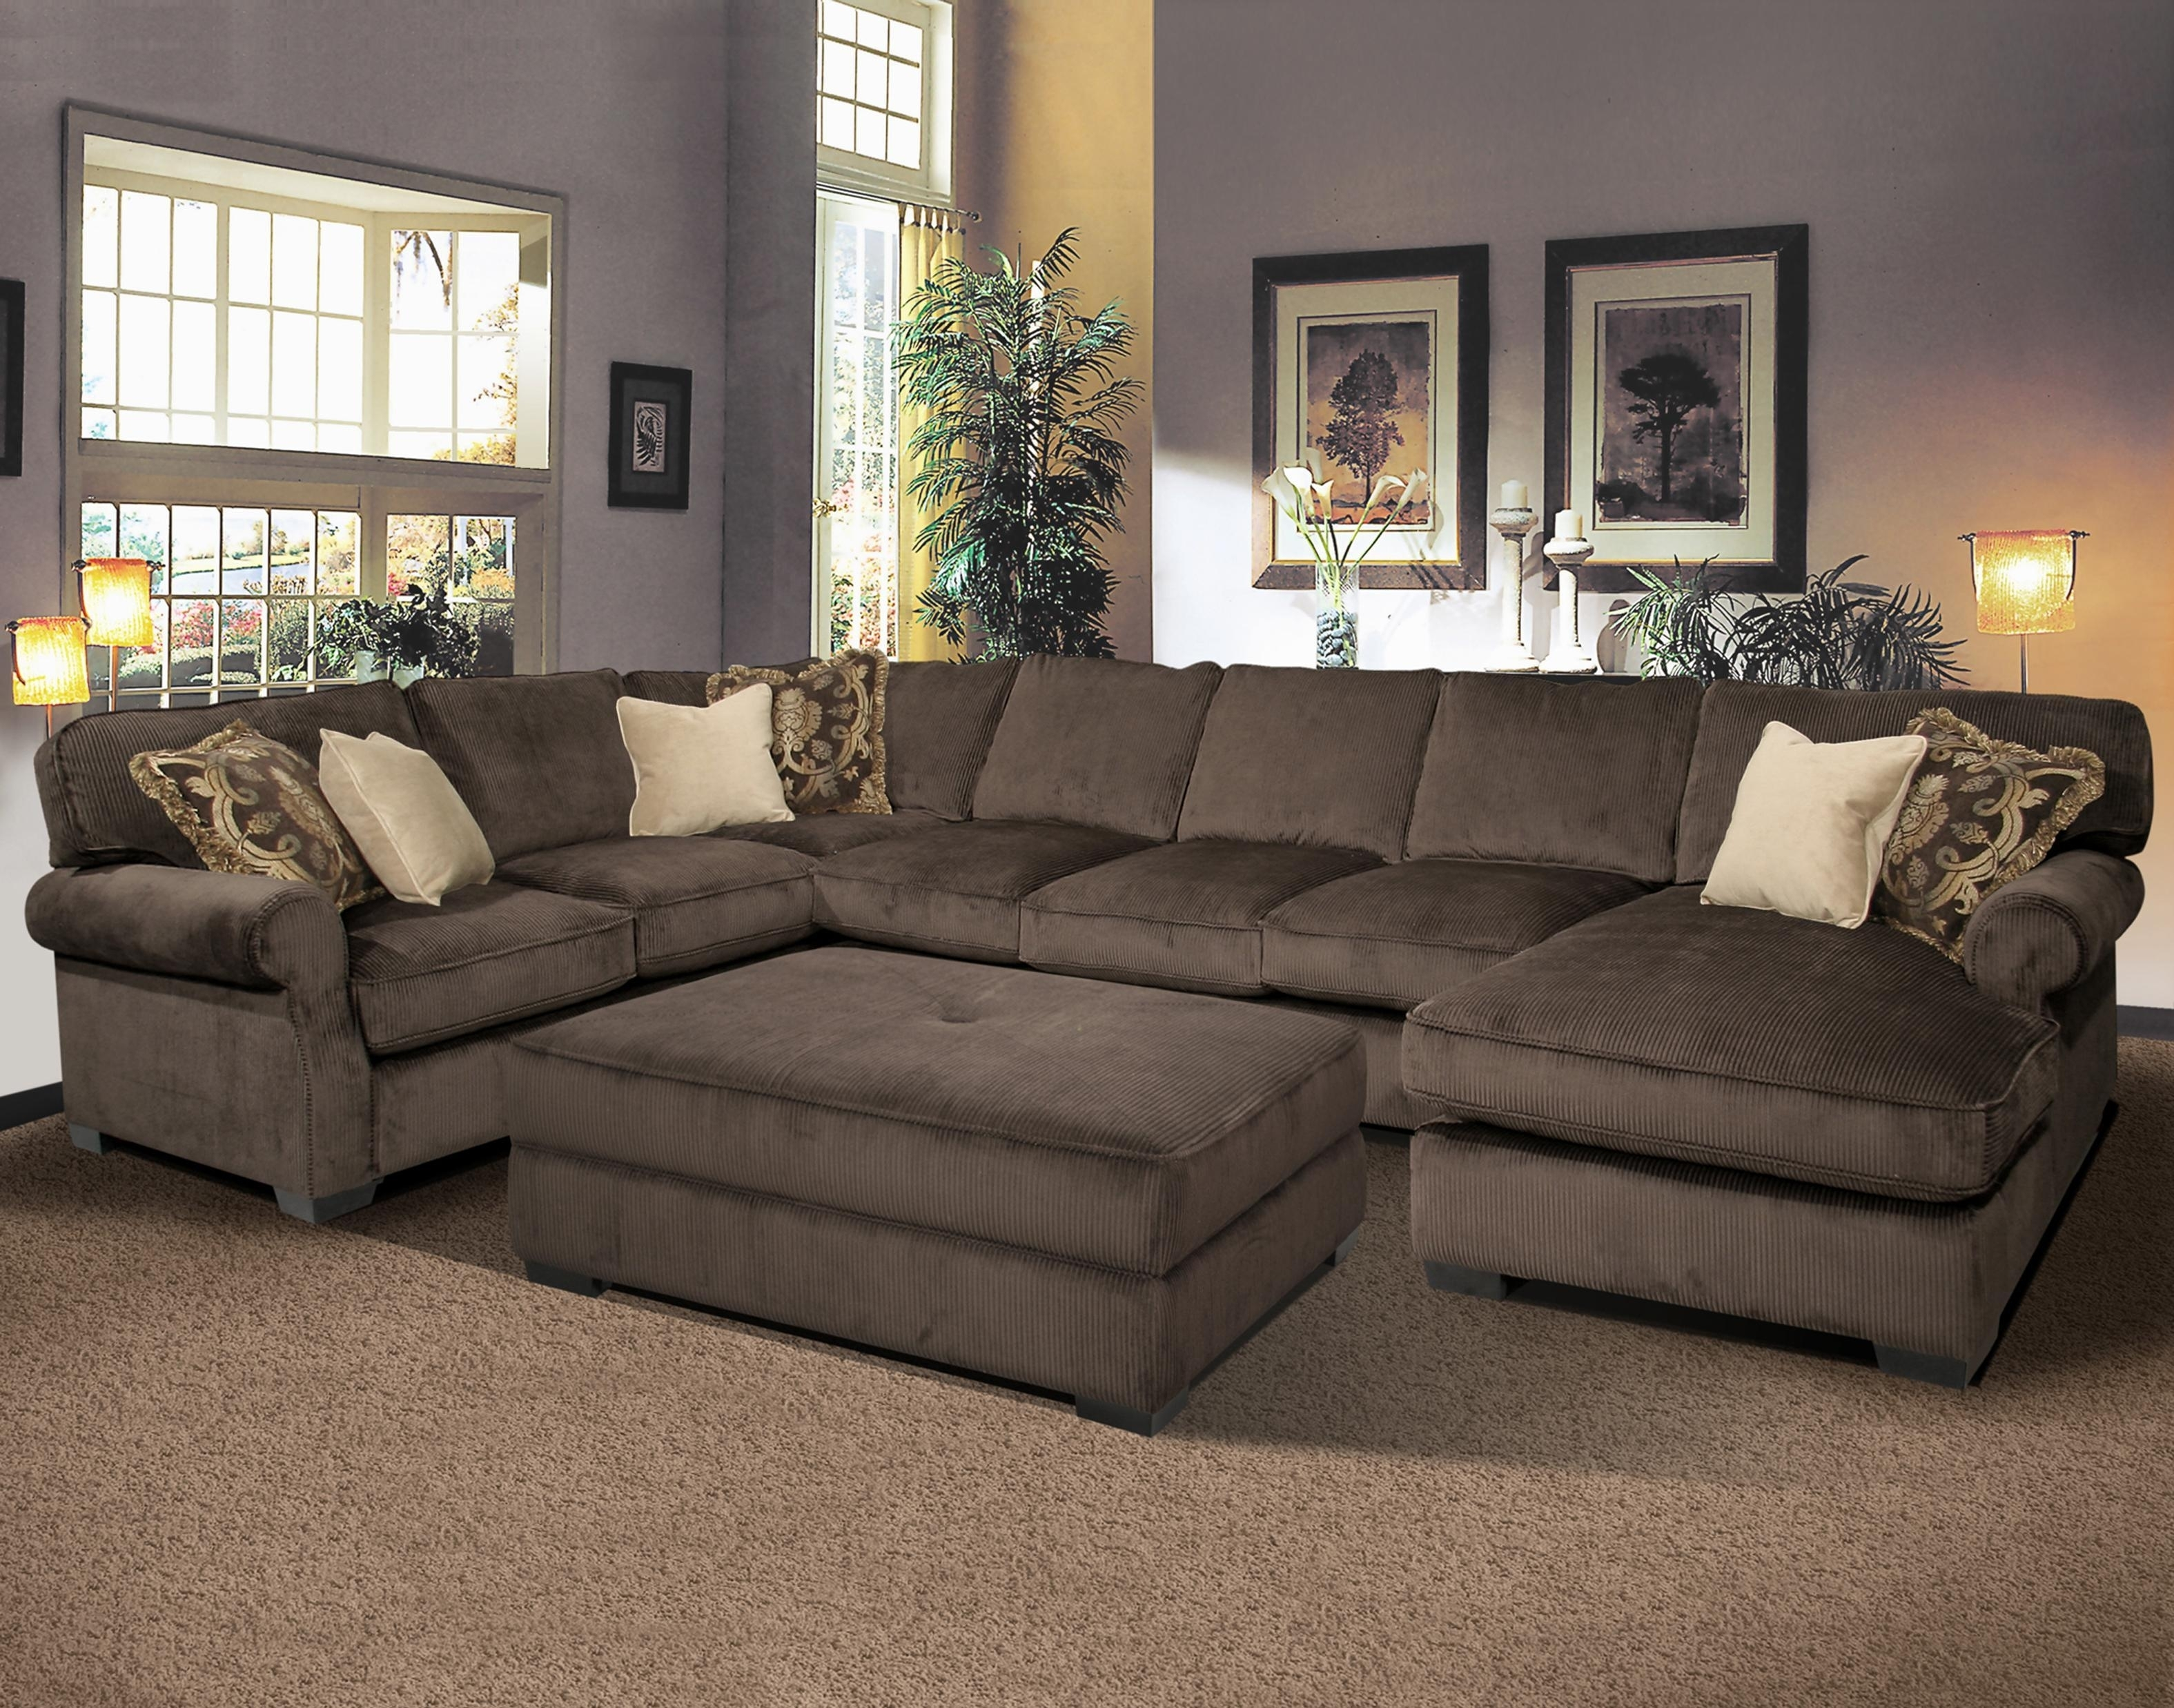 20 Best Large Comfortable Sectional Sofas | Sofa Ideas throughout Comfortable Sectional Sofas (Image 1 of 10)